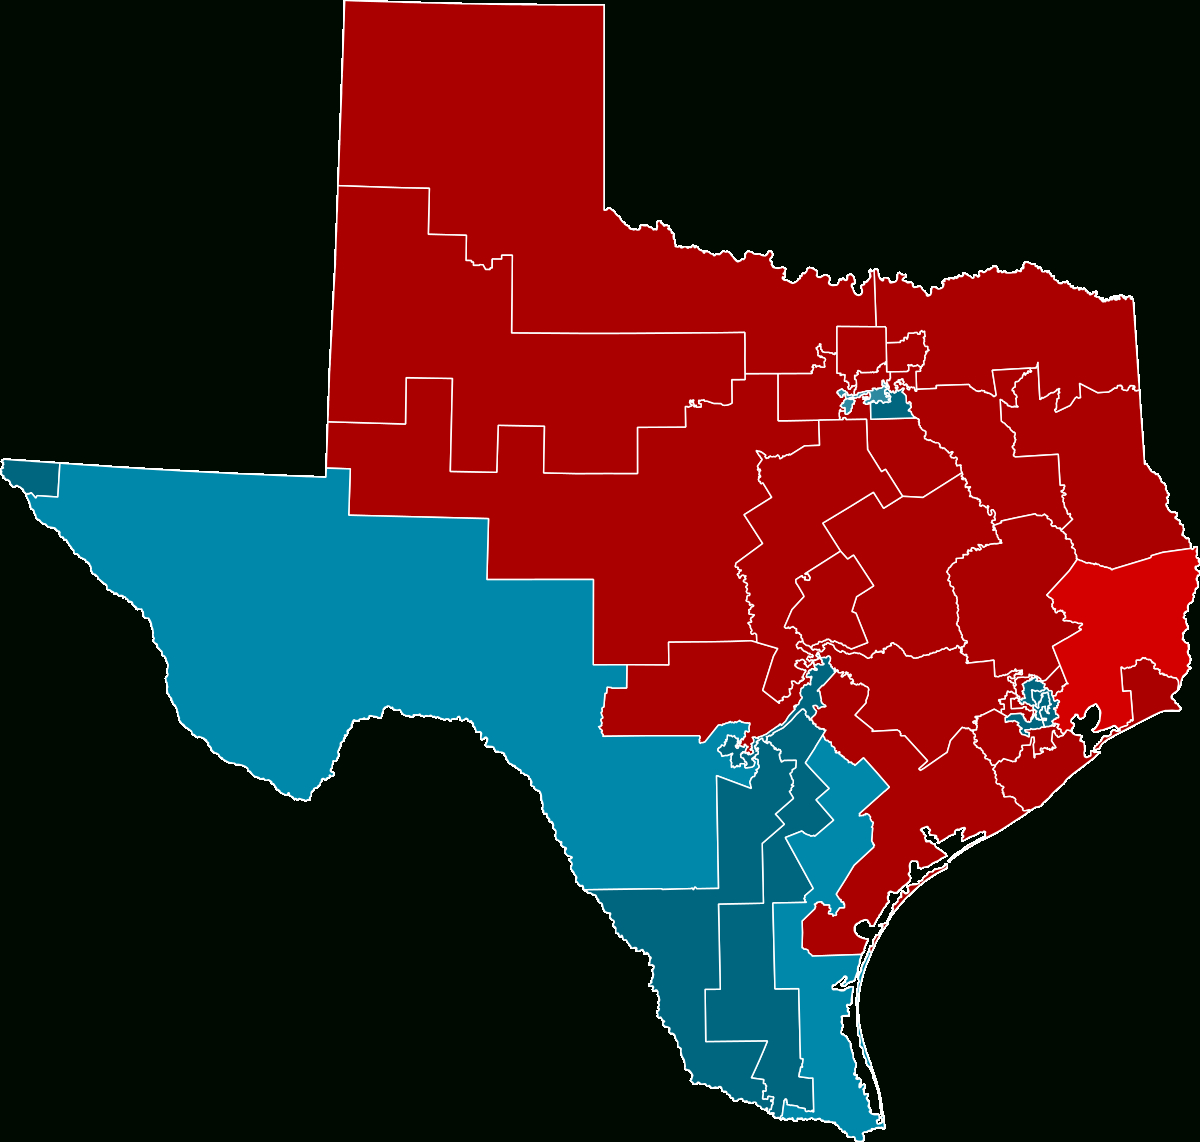 2012 United States House Of Representatives Elections In Texas - Texas State House District Map